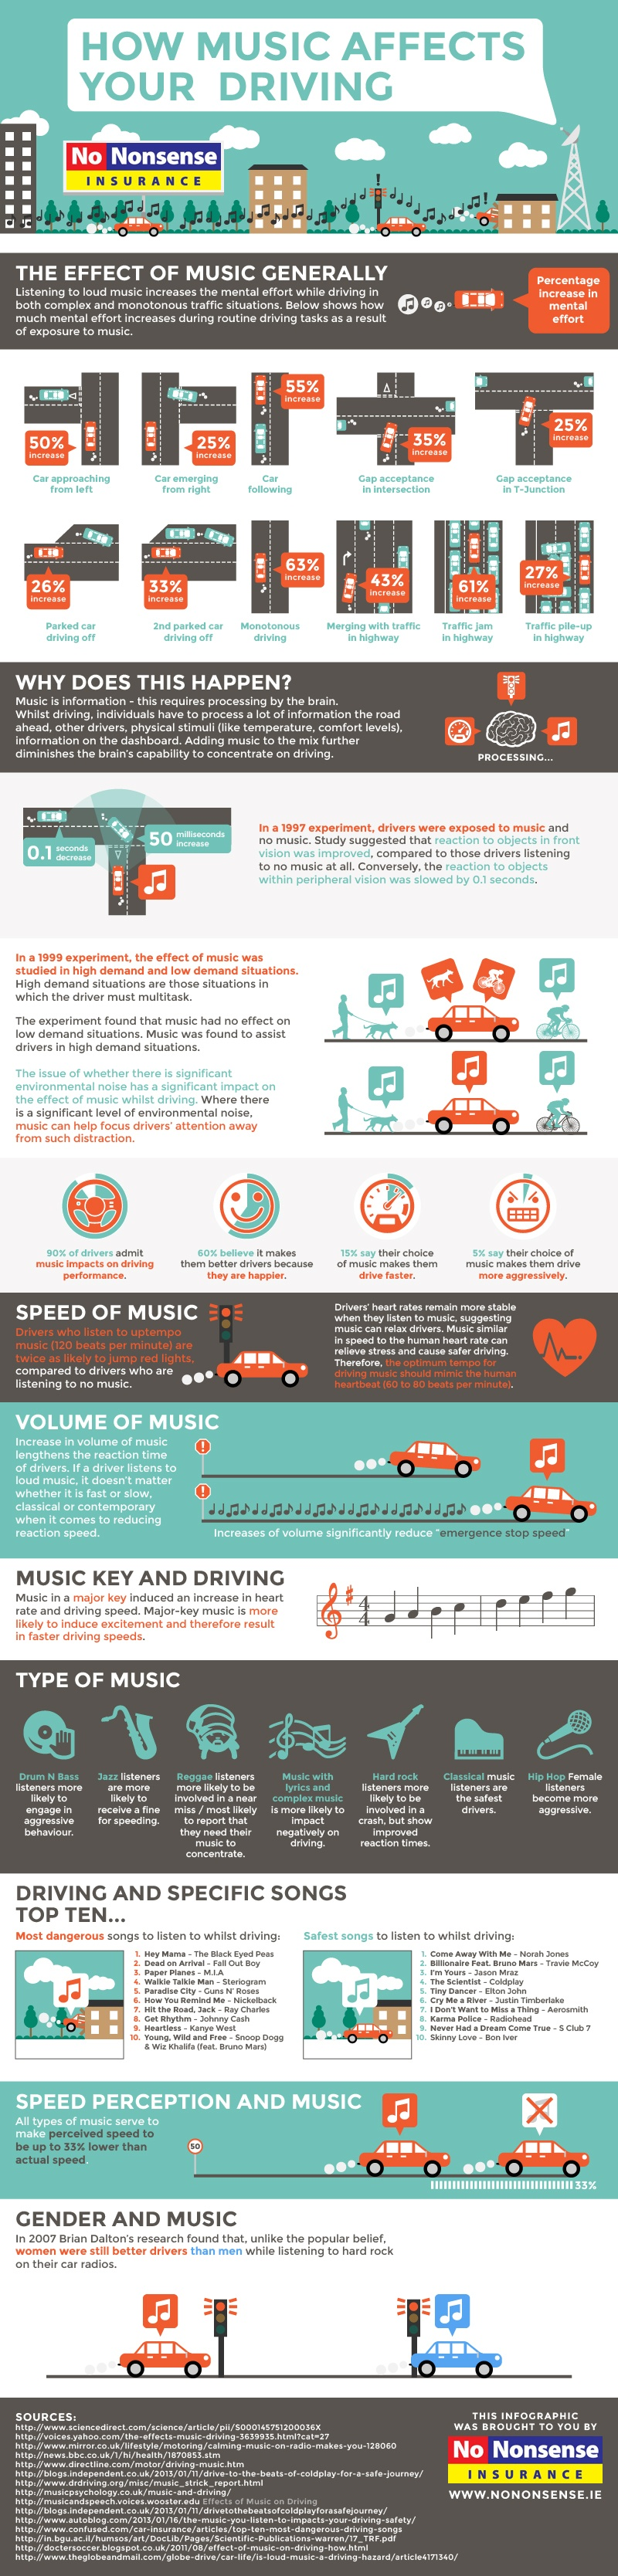 music-affects-driving-infographic.jpg